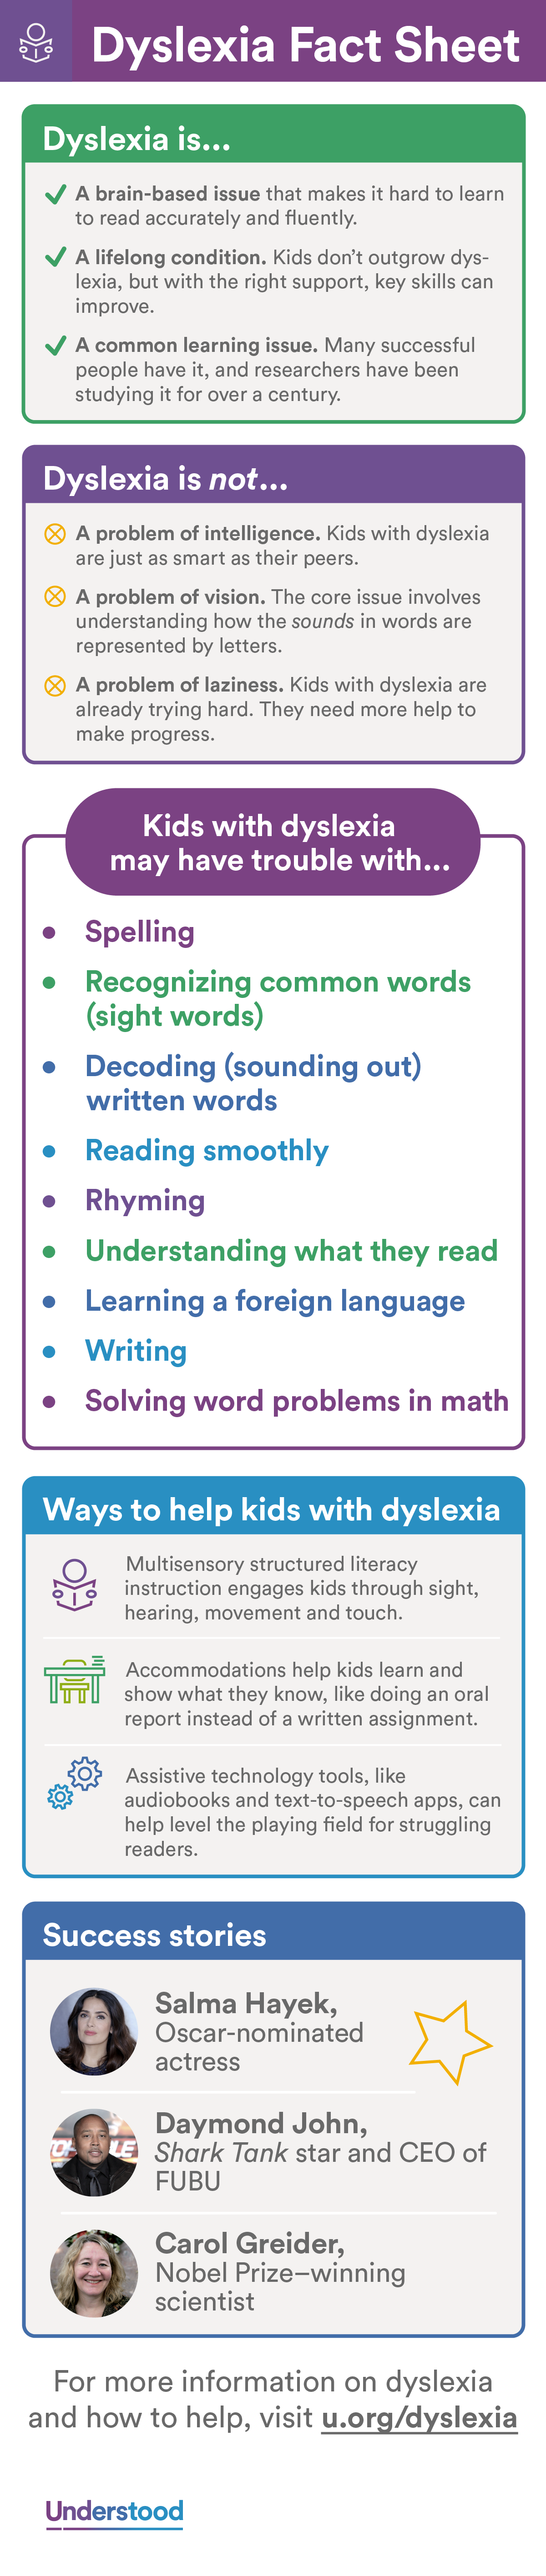 Understanding Dyslexia And How To Help Kids Who Have It >> Dyslexia Fact Sheet Understanding Your Child Dyslexia Teaching